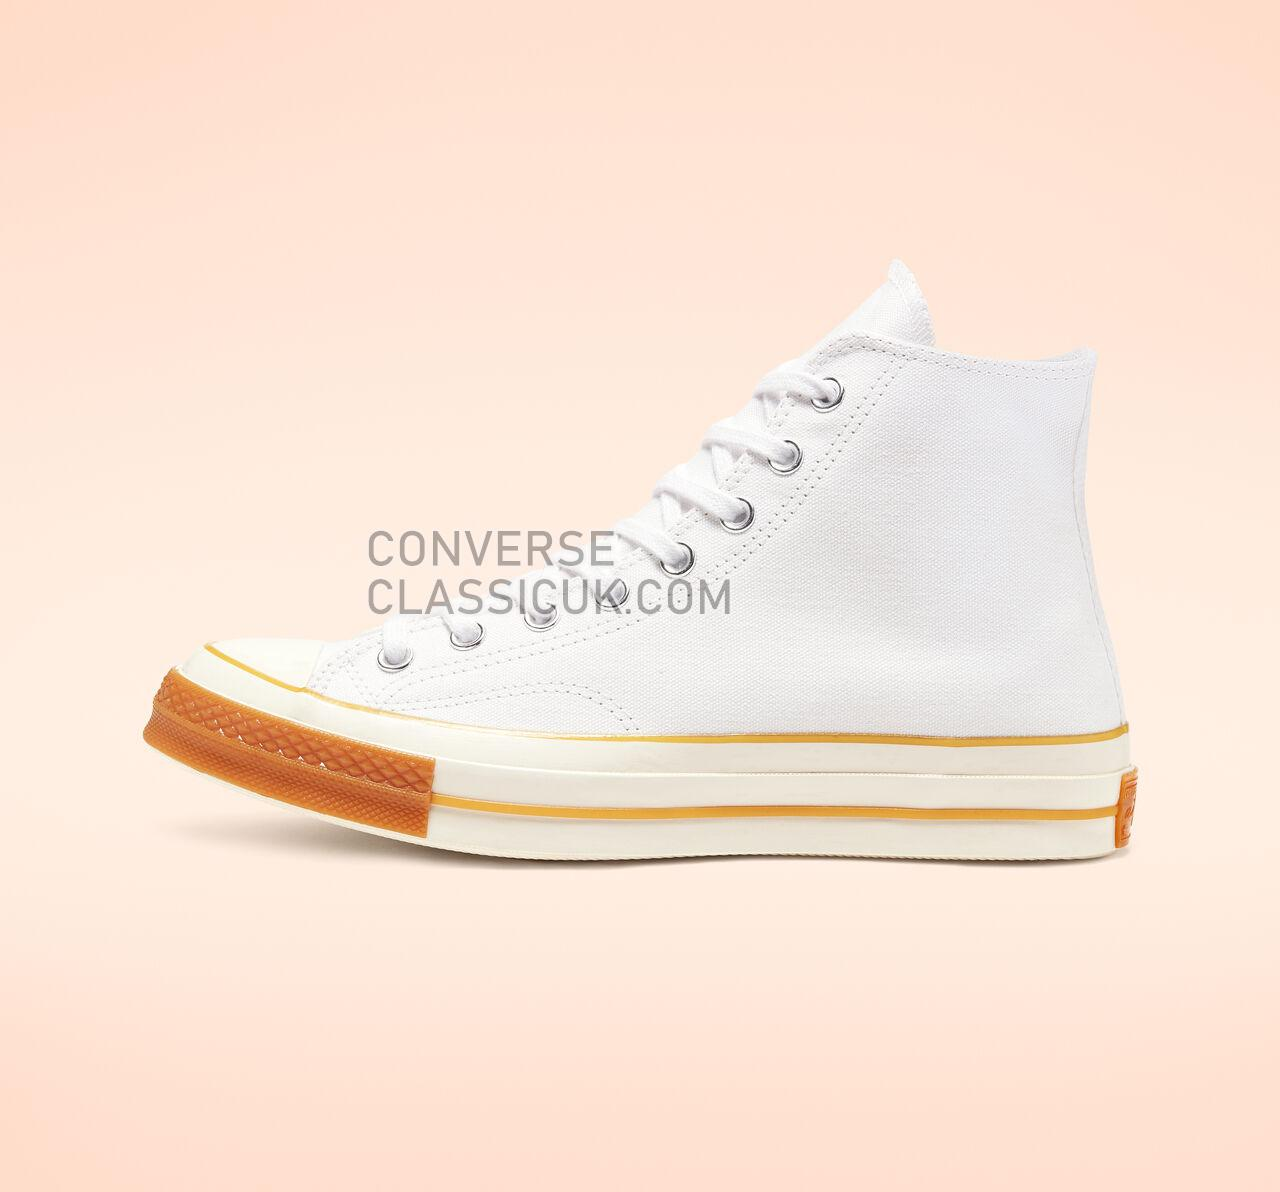 Converse Chuck 70 Pop Toe High Top Mens Womens Unisex 165720C White/Egret/Gum Shoes